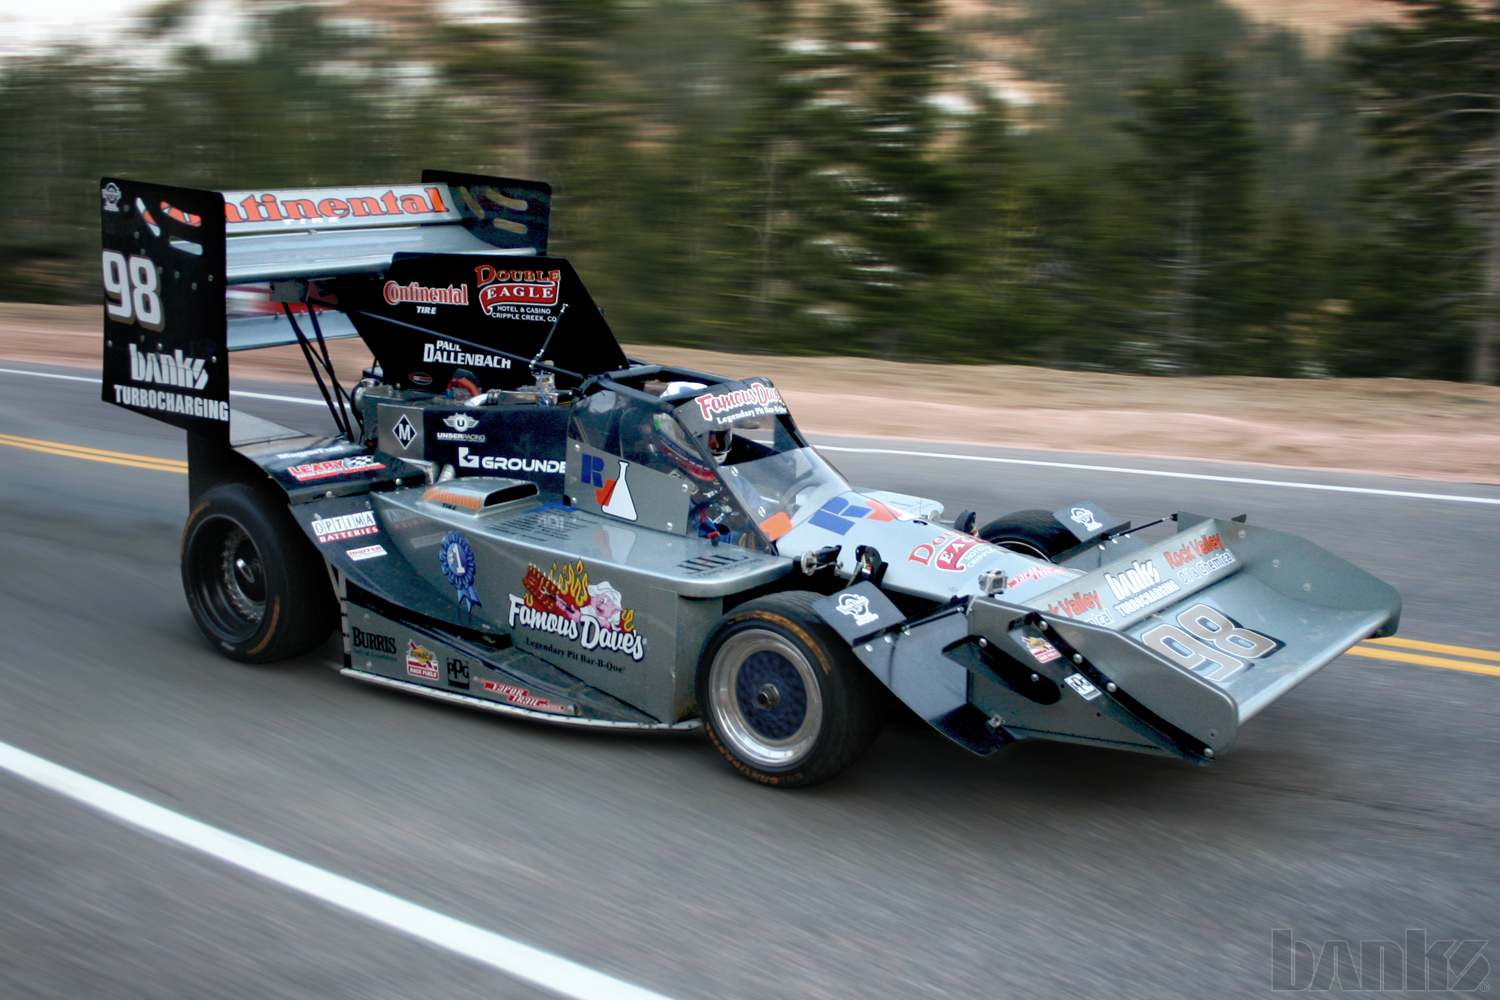 Banks twin-turbo Pikes Peak